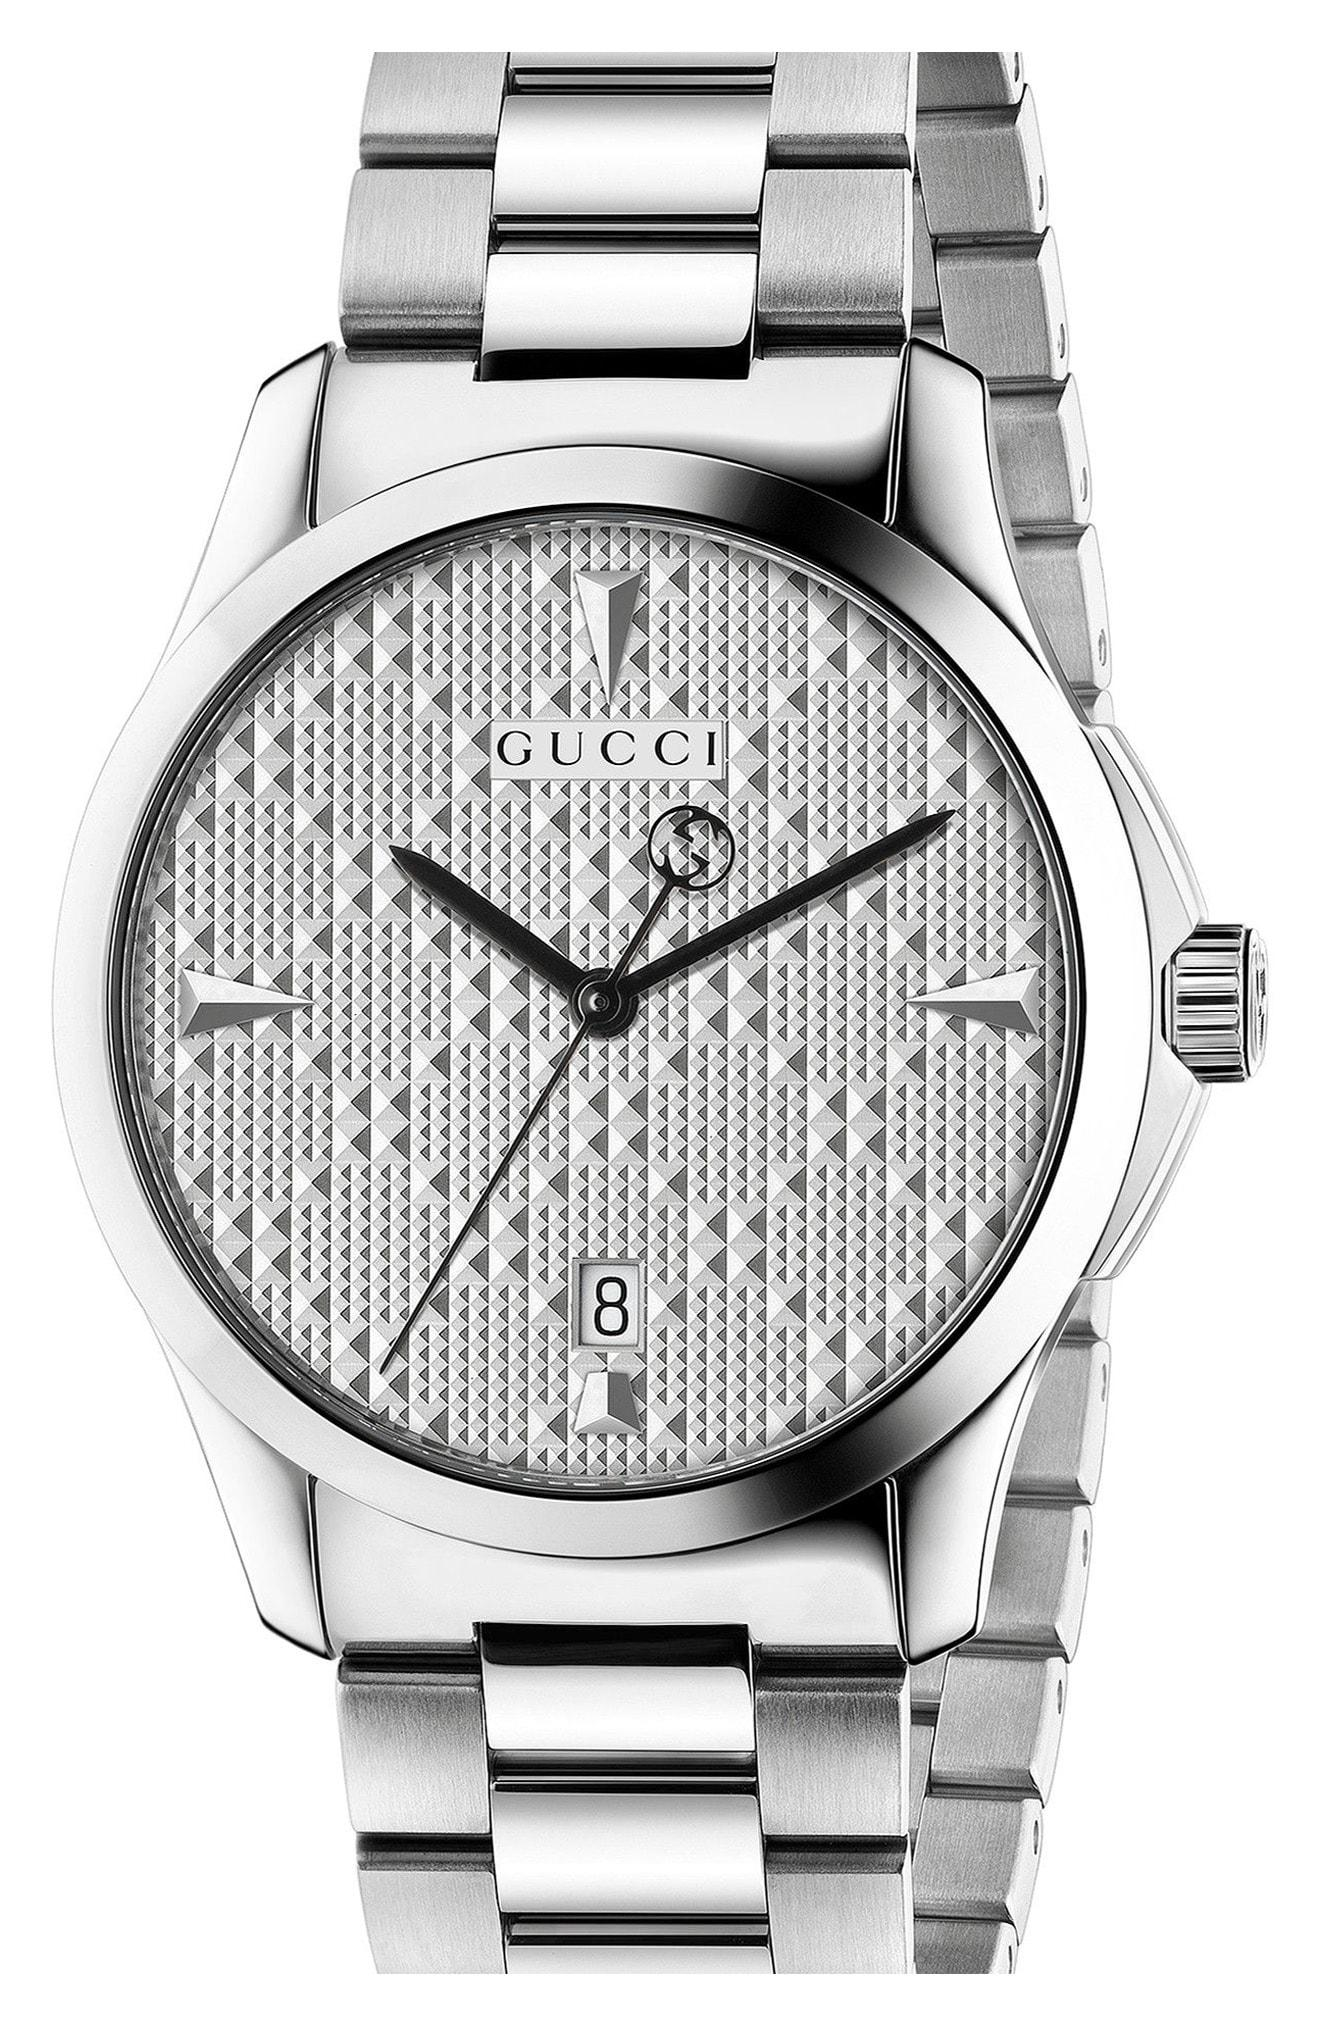 96c28226d01 Lyst - Gucci  g-timeless  Watch in Metallic for Men - Save ...